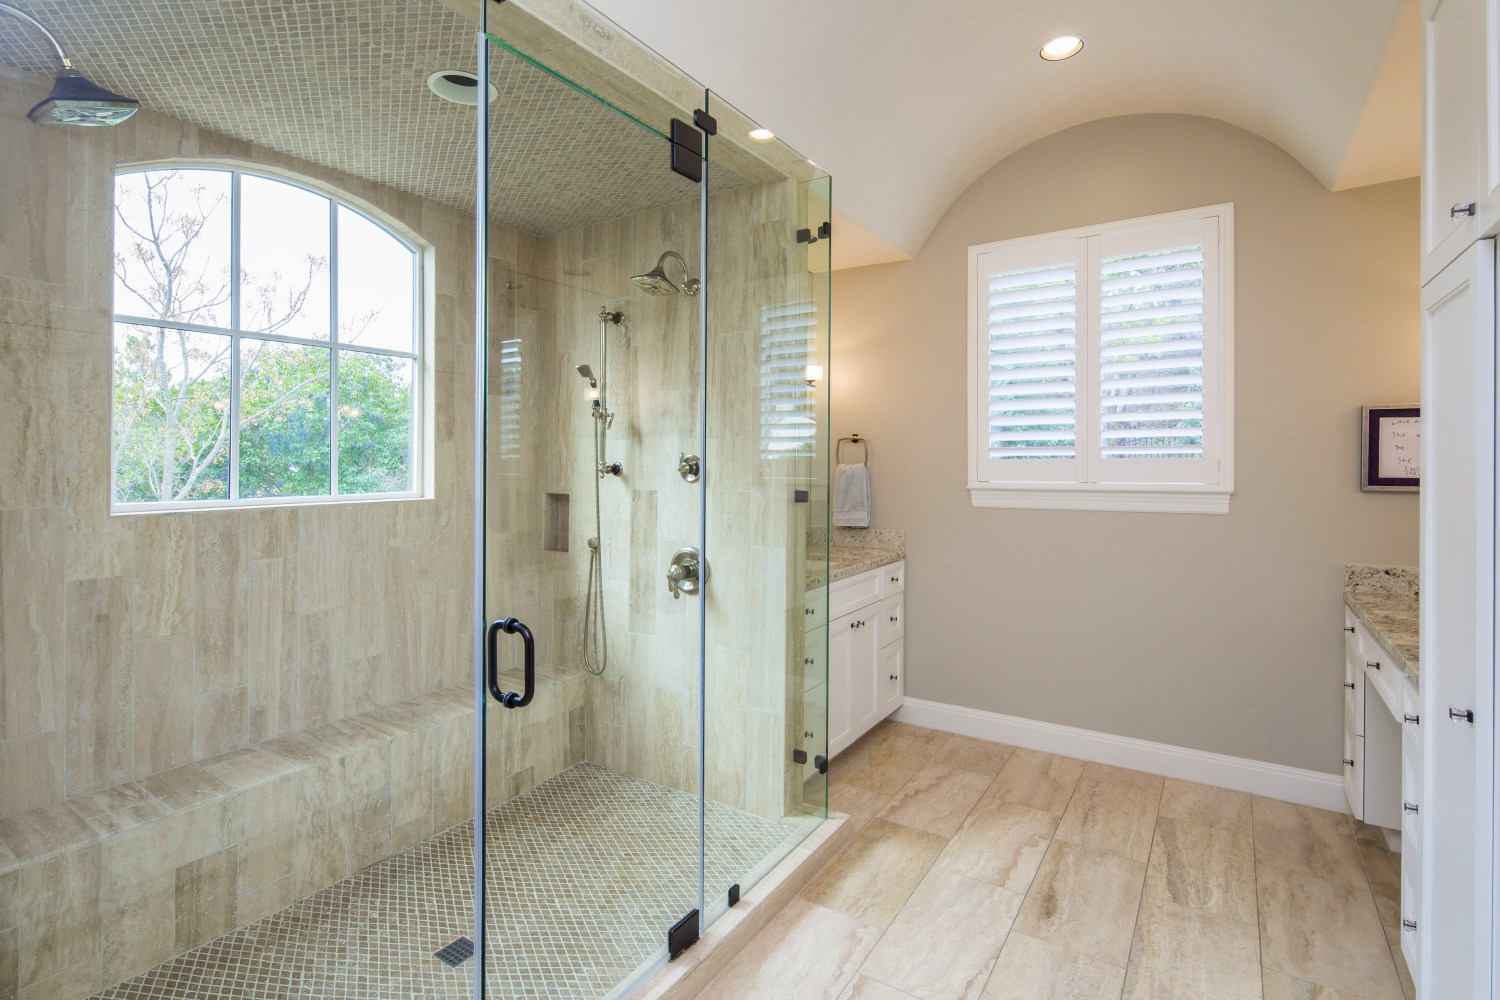 Architecture Home French contemporary bathroom